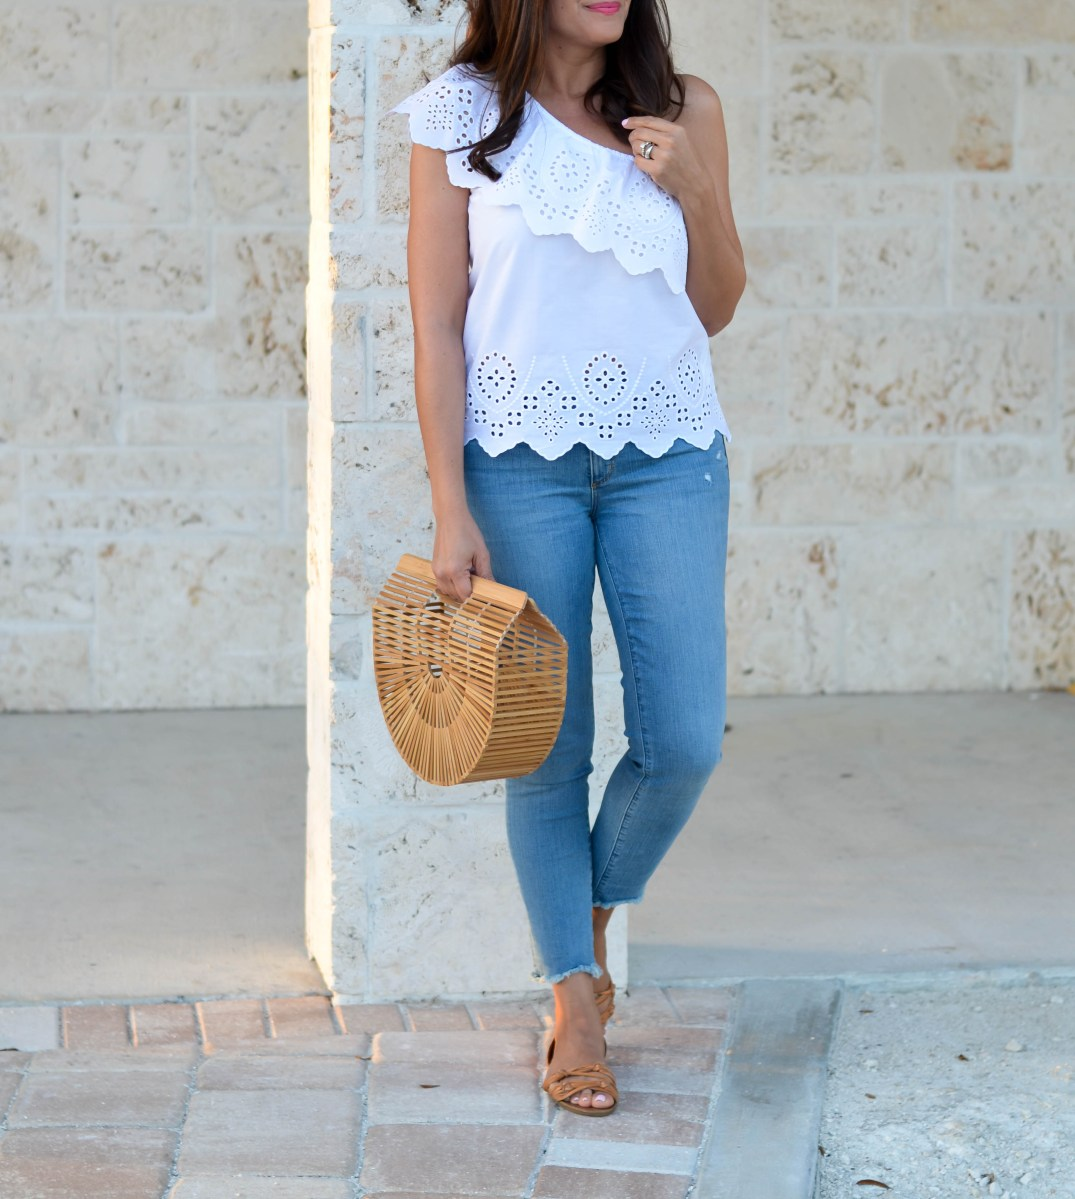 THE BEST EYELET TOPS TO BUY FOR SPRING